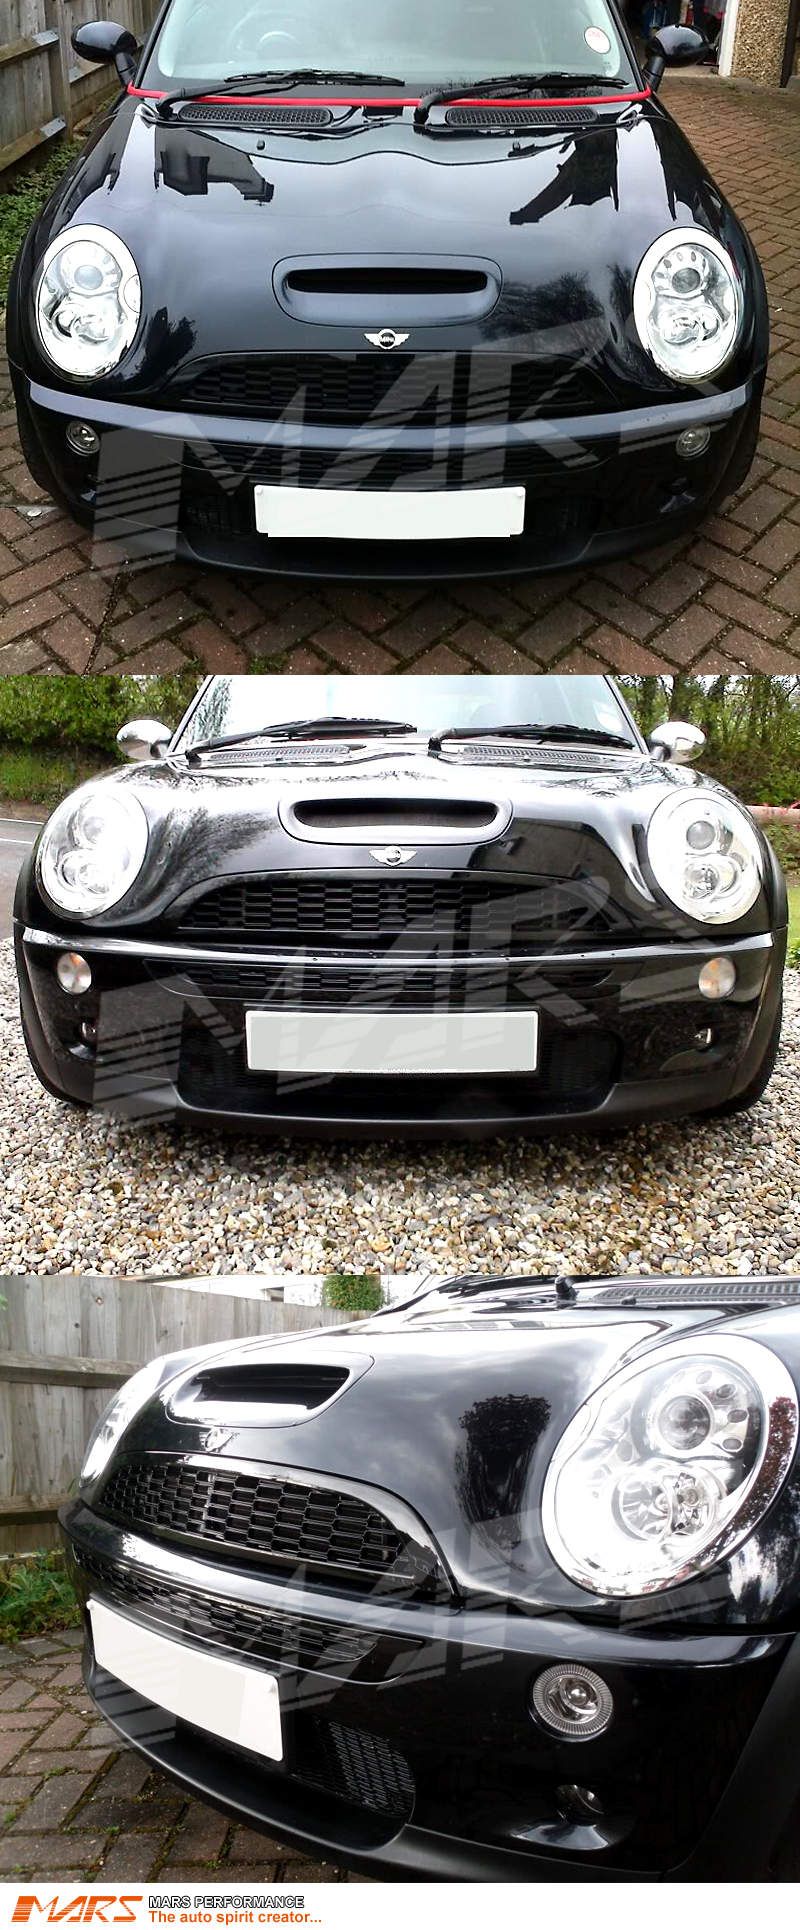 black jcw style gloss black front grill for mini cooper cooper s 01 06 r50 r52 r53 mars. Black Bedroom Furniture Sets. Home Design Ideas